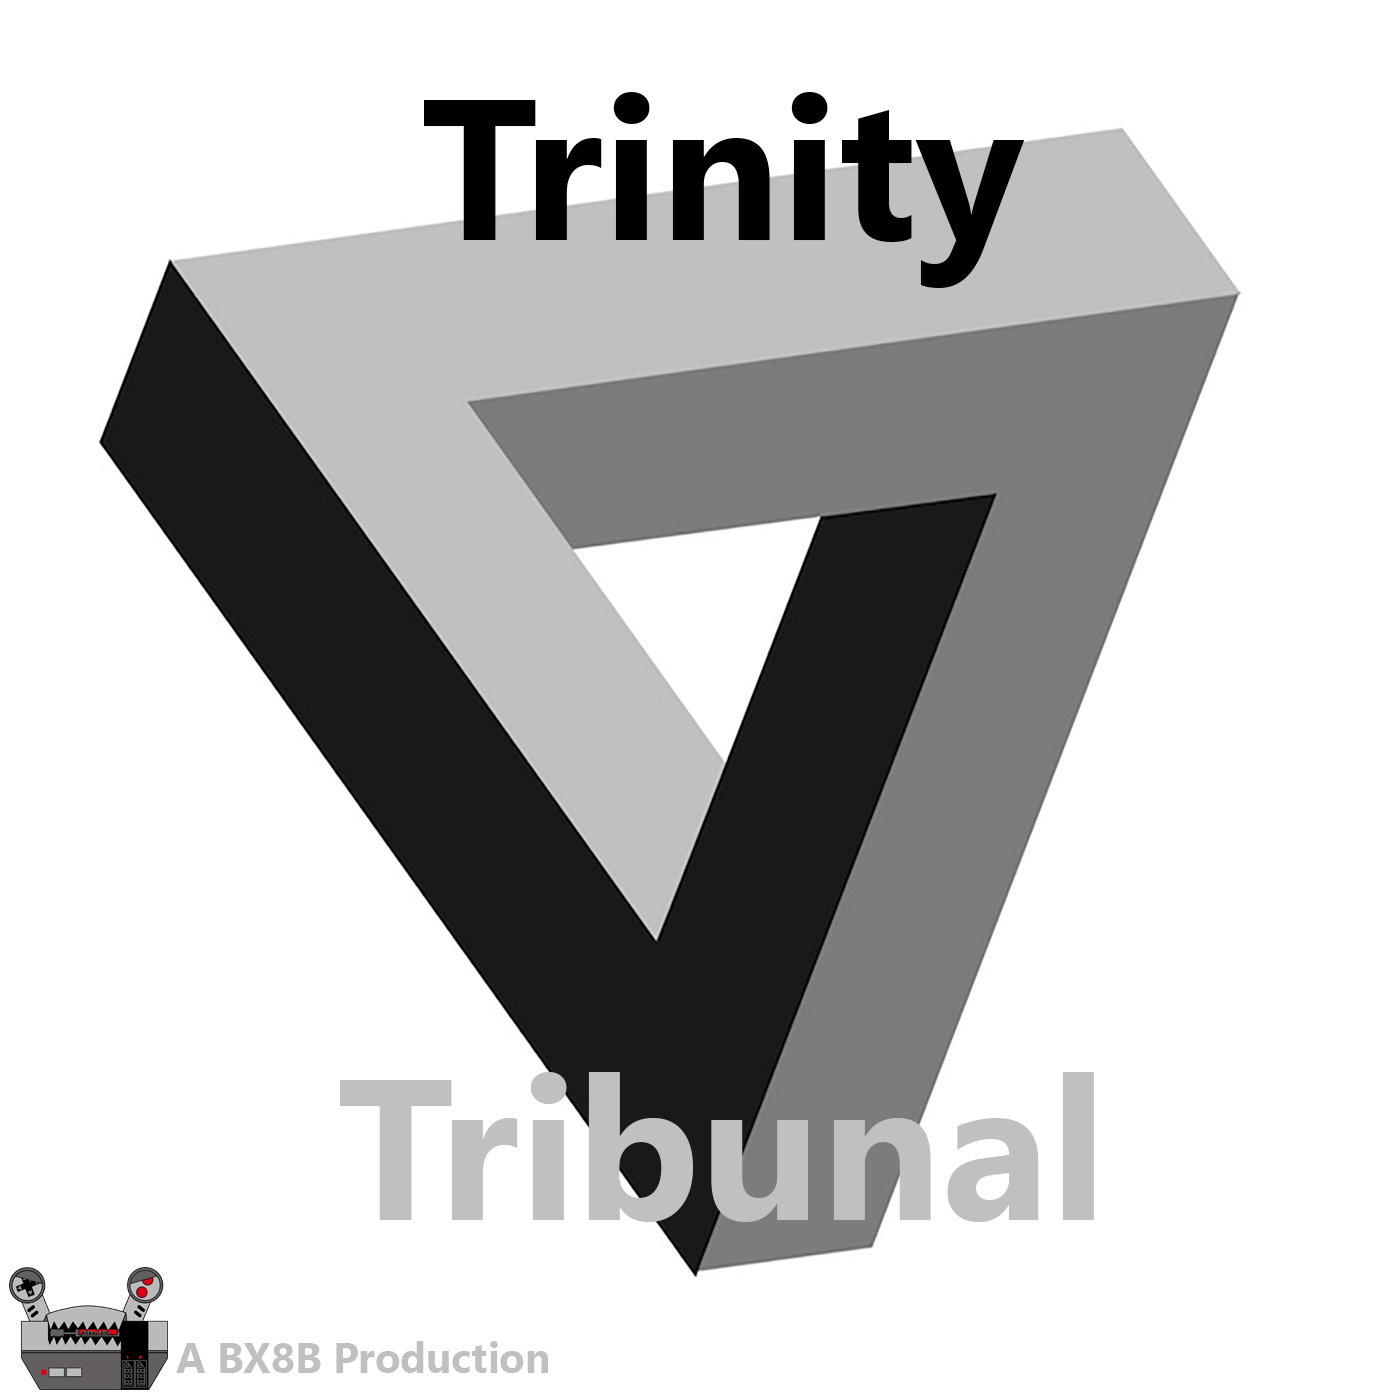 Trinity Tribunal Podcast - Bit By 8 Bit